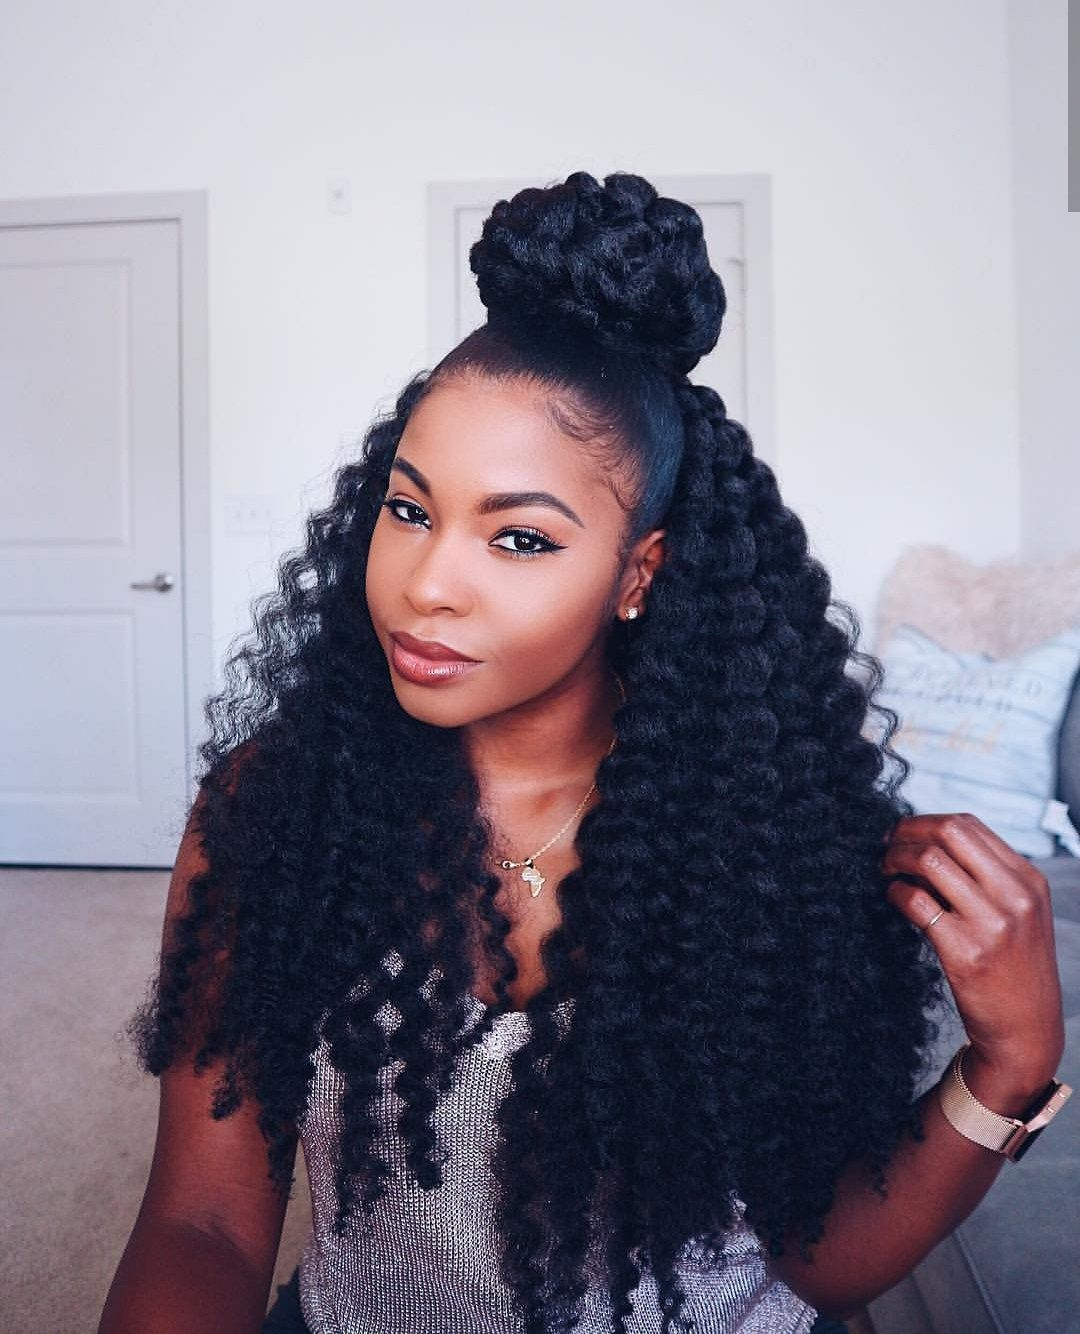 Braids, Locs, Twists & More. 10 Crochet Hairstyles For Everyone